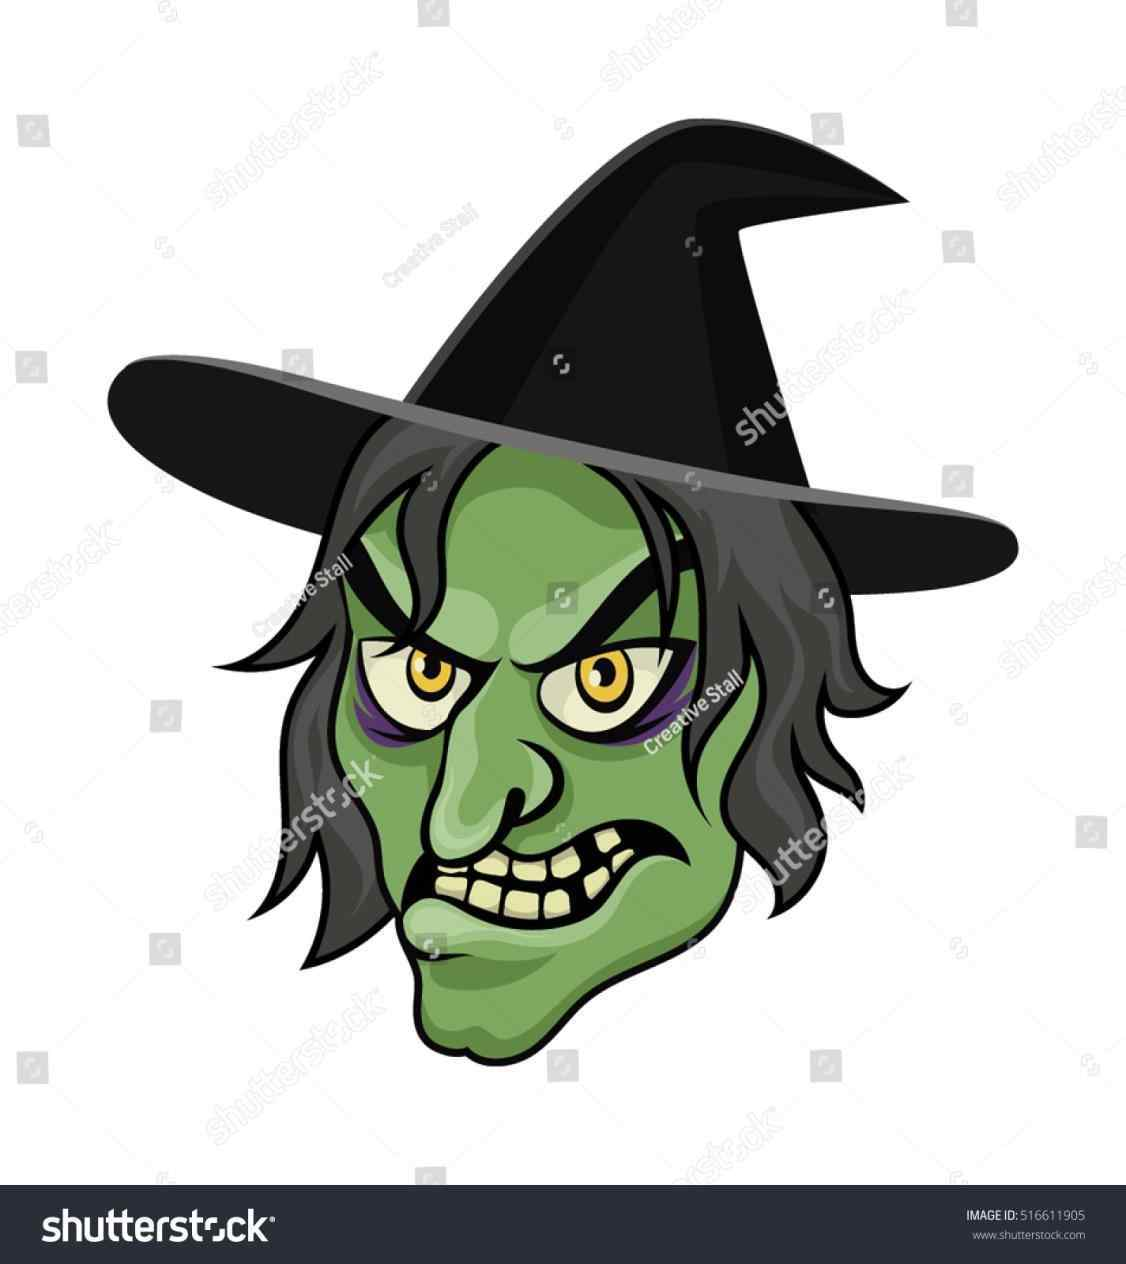 Witch Face Drawing at GetDrawings.com | Free for personal use Witch ...